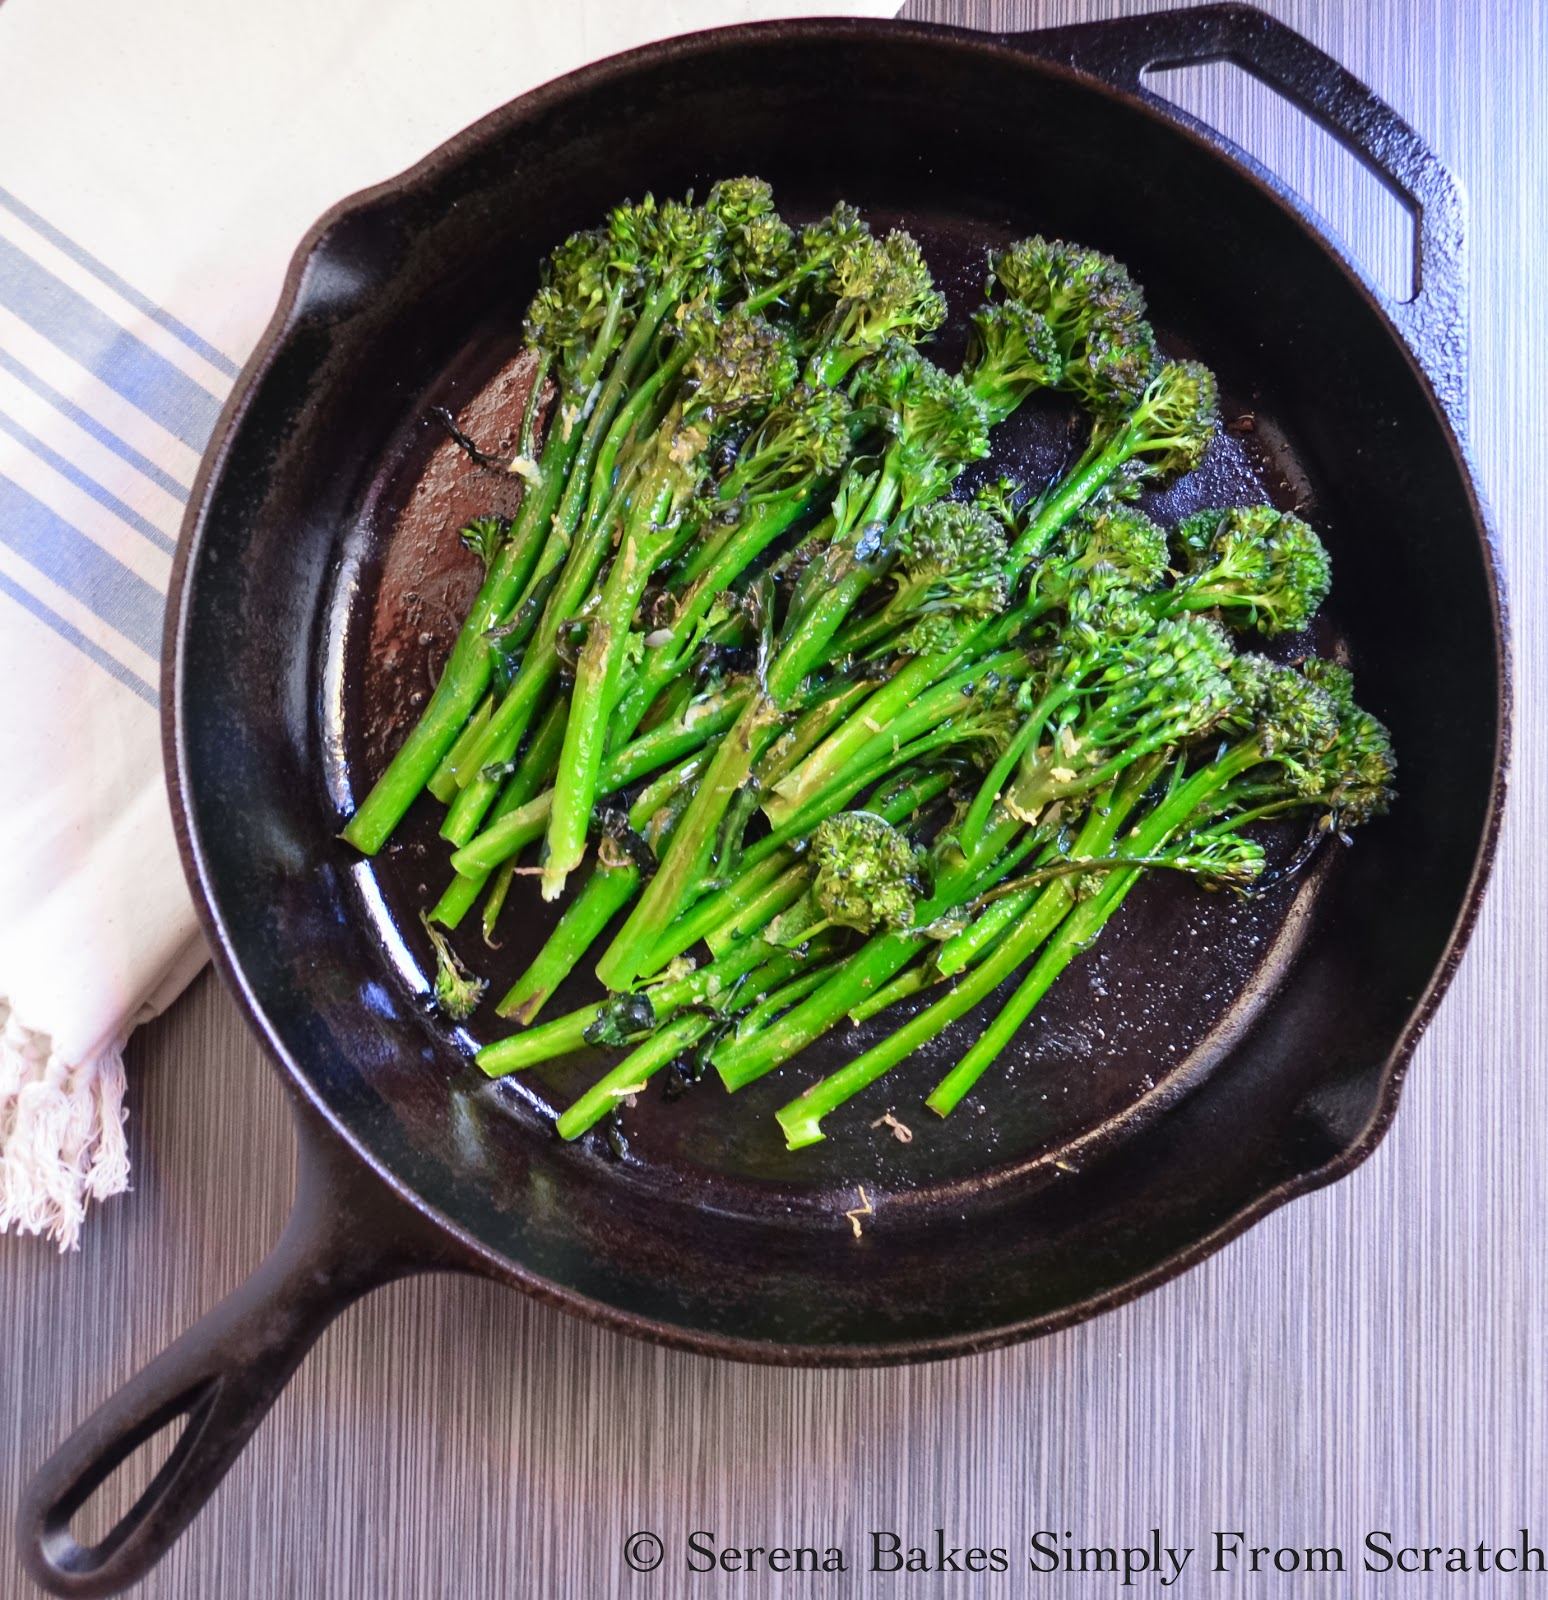 Oven Roasted Broccoli or Broccolini